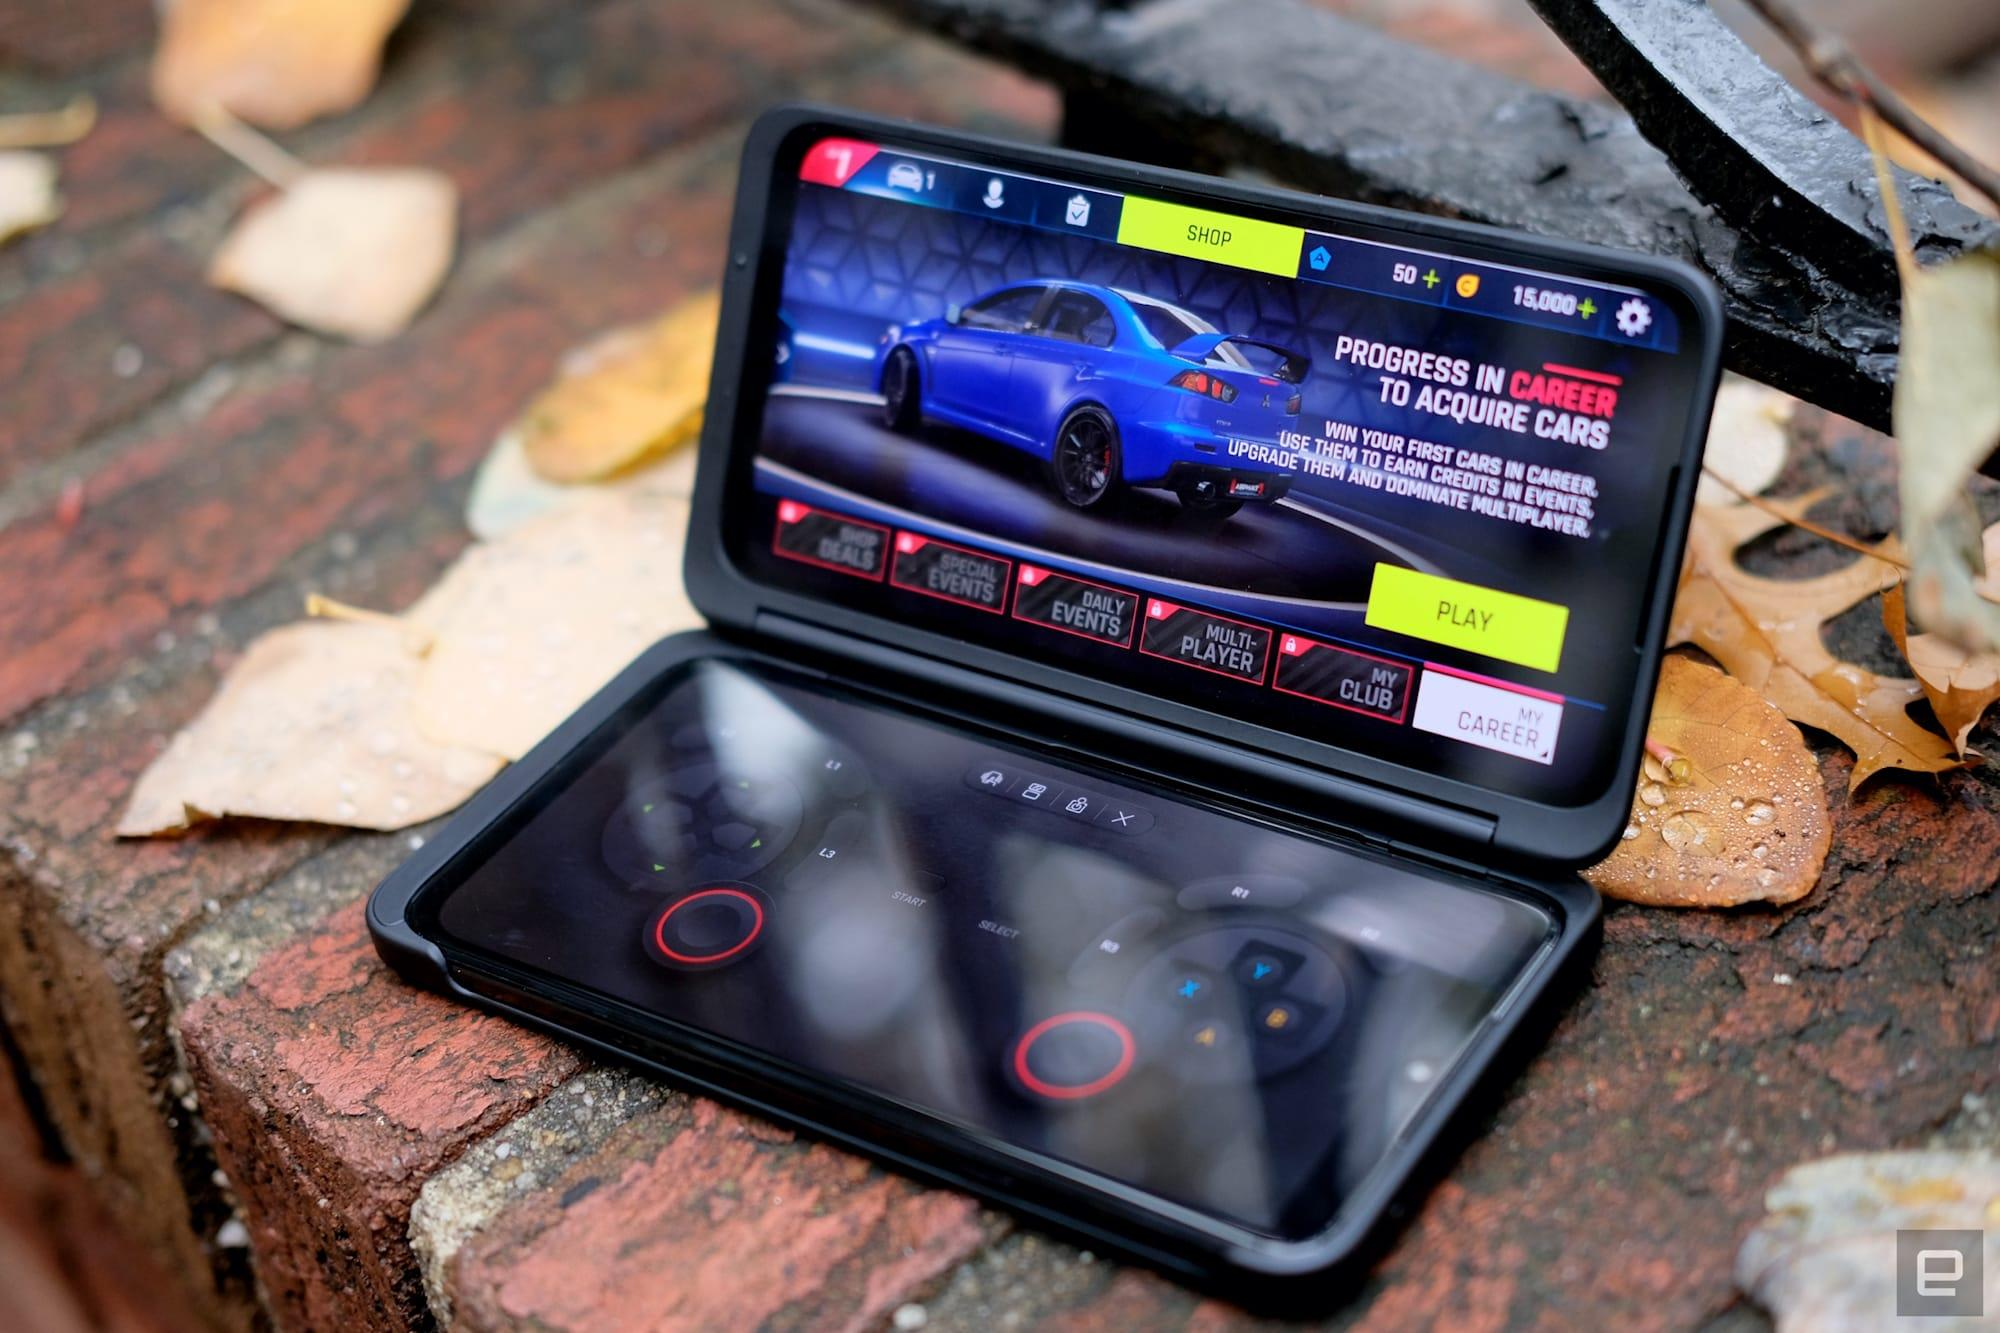 LG G8X ThinQ review: More screens aren't always better